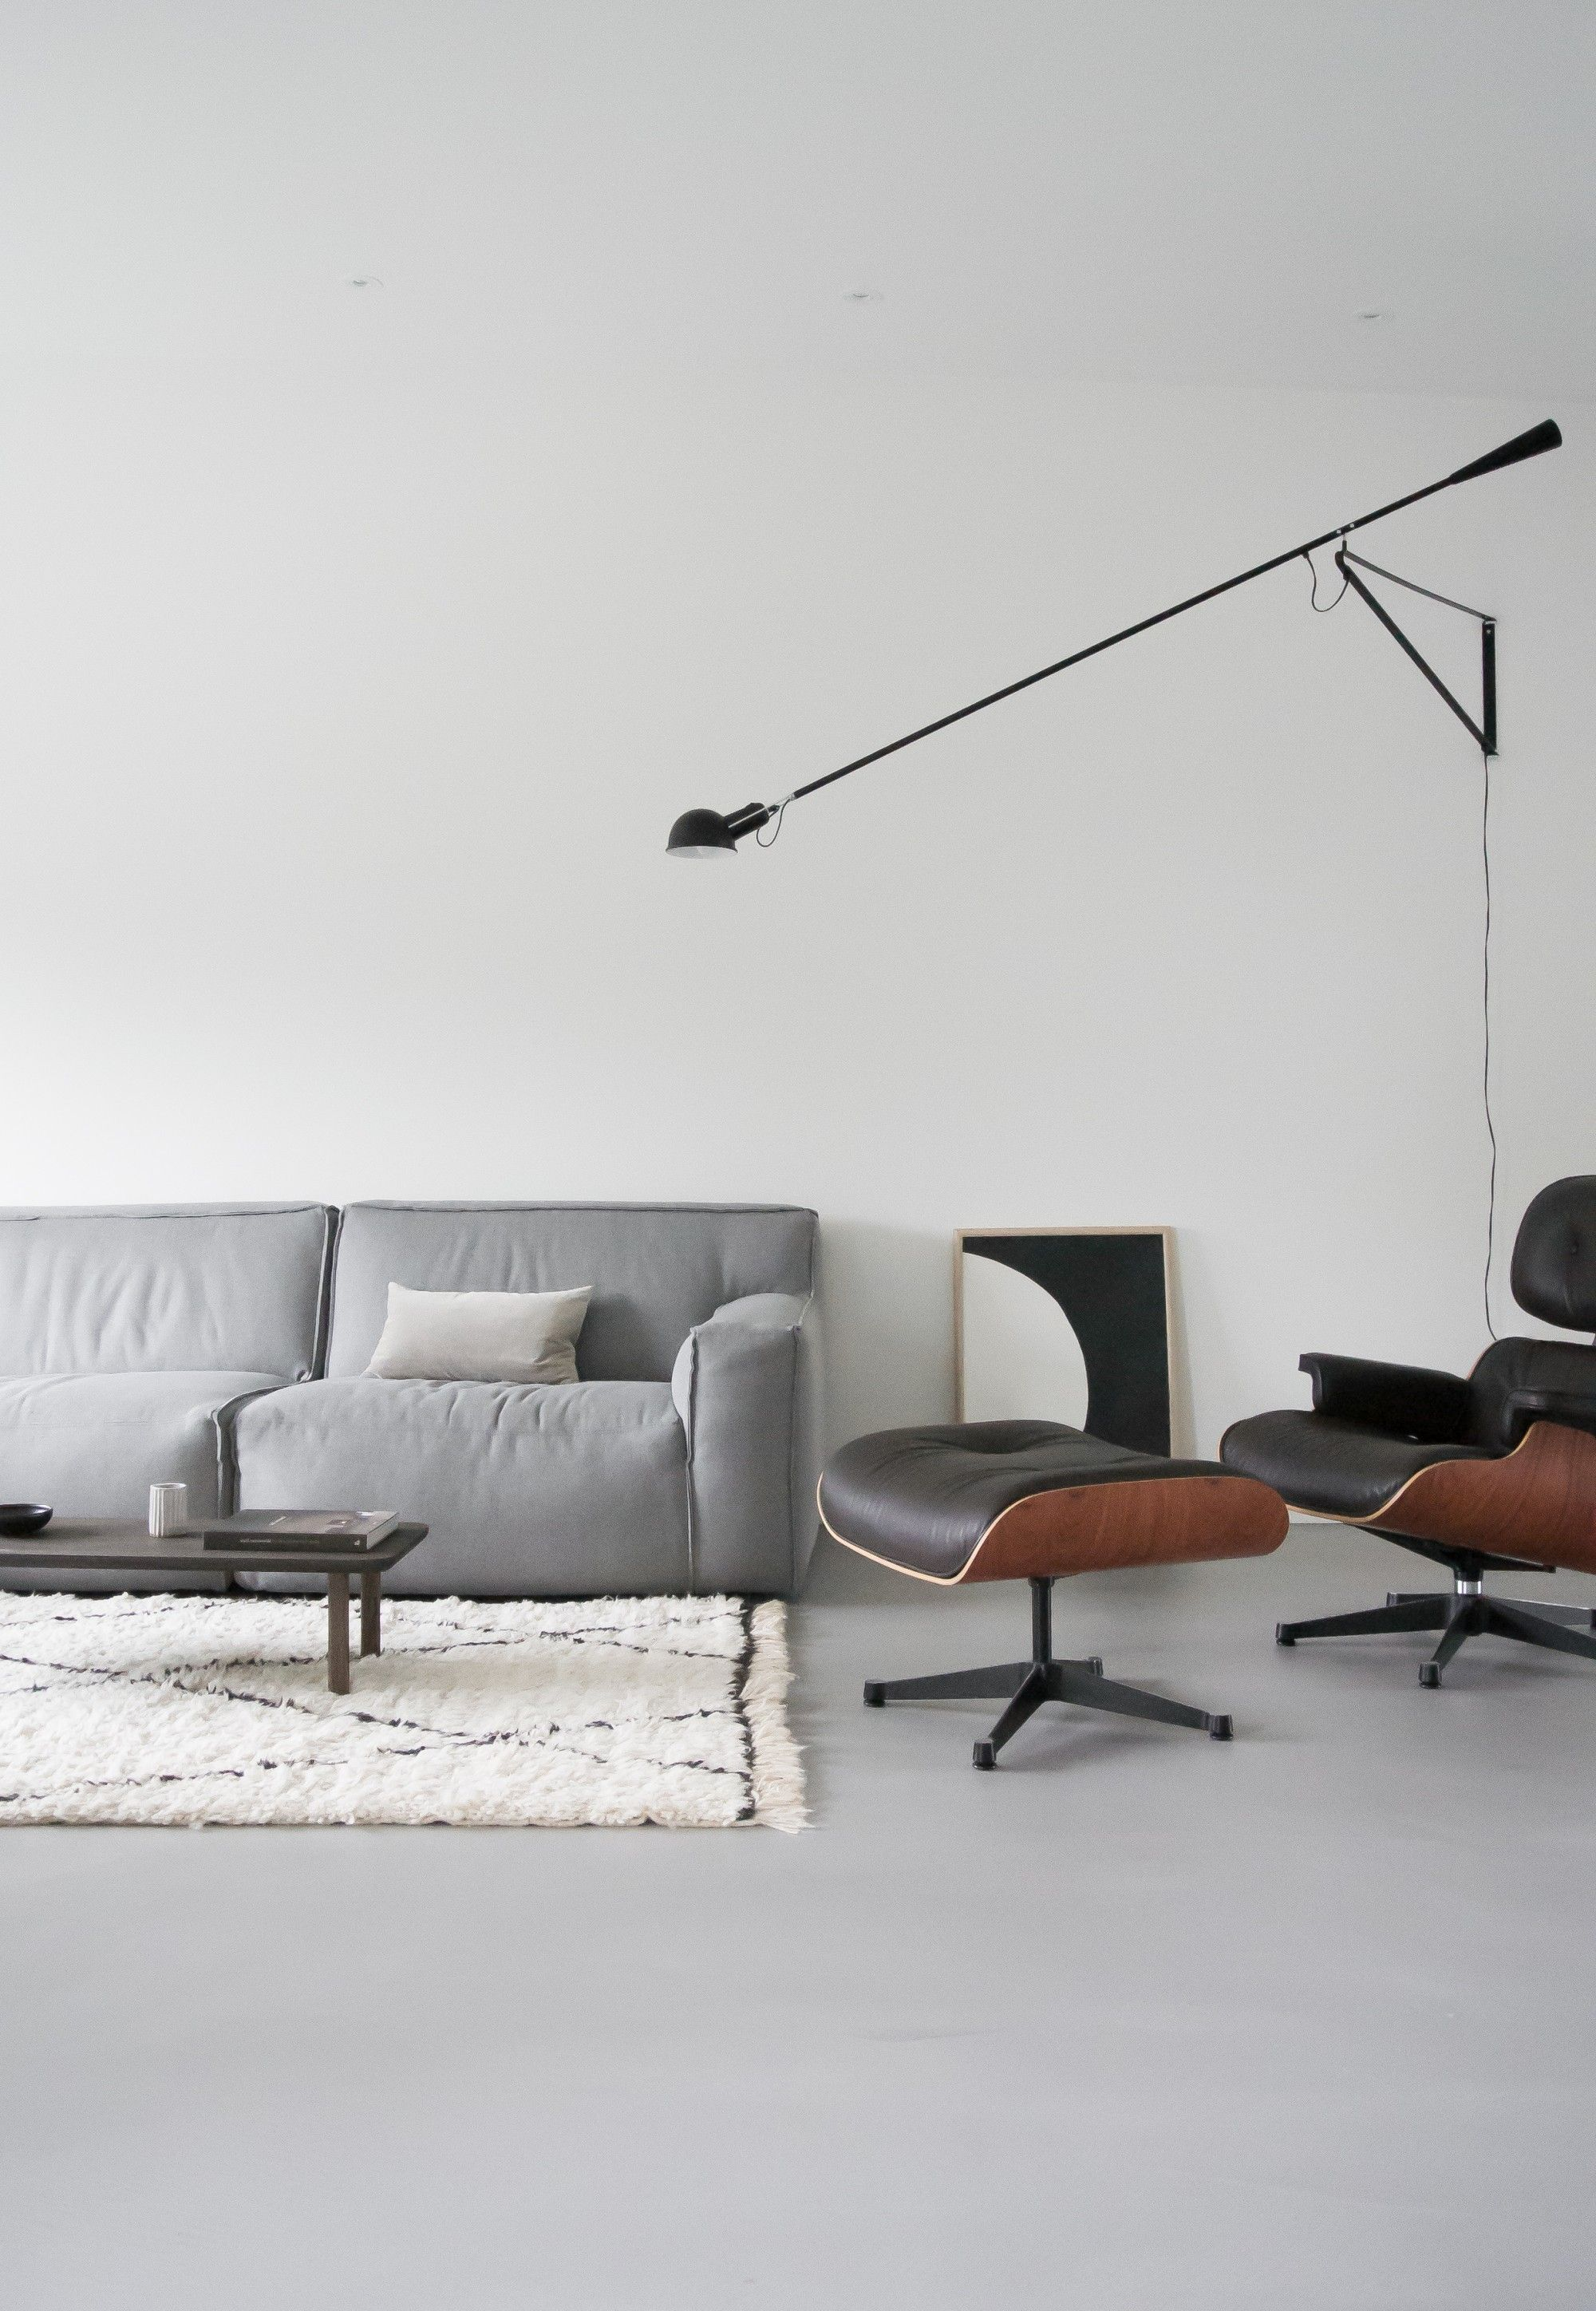 Flos 265 at home